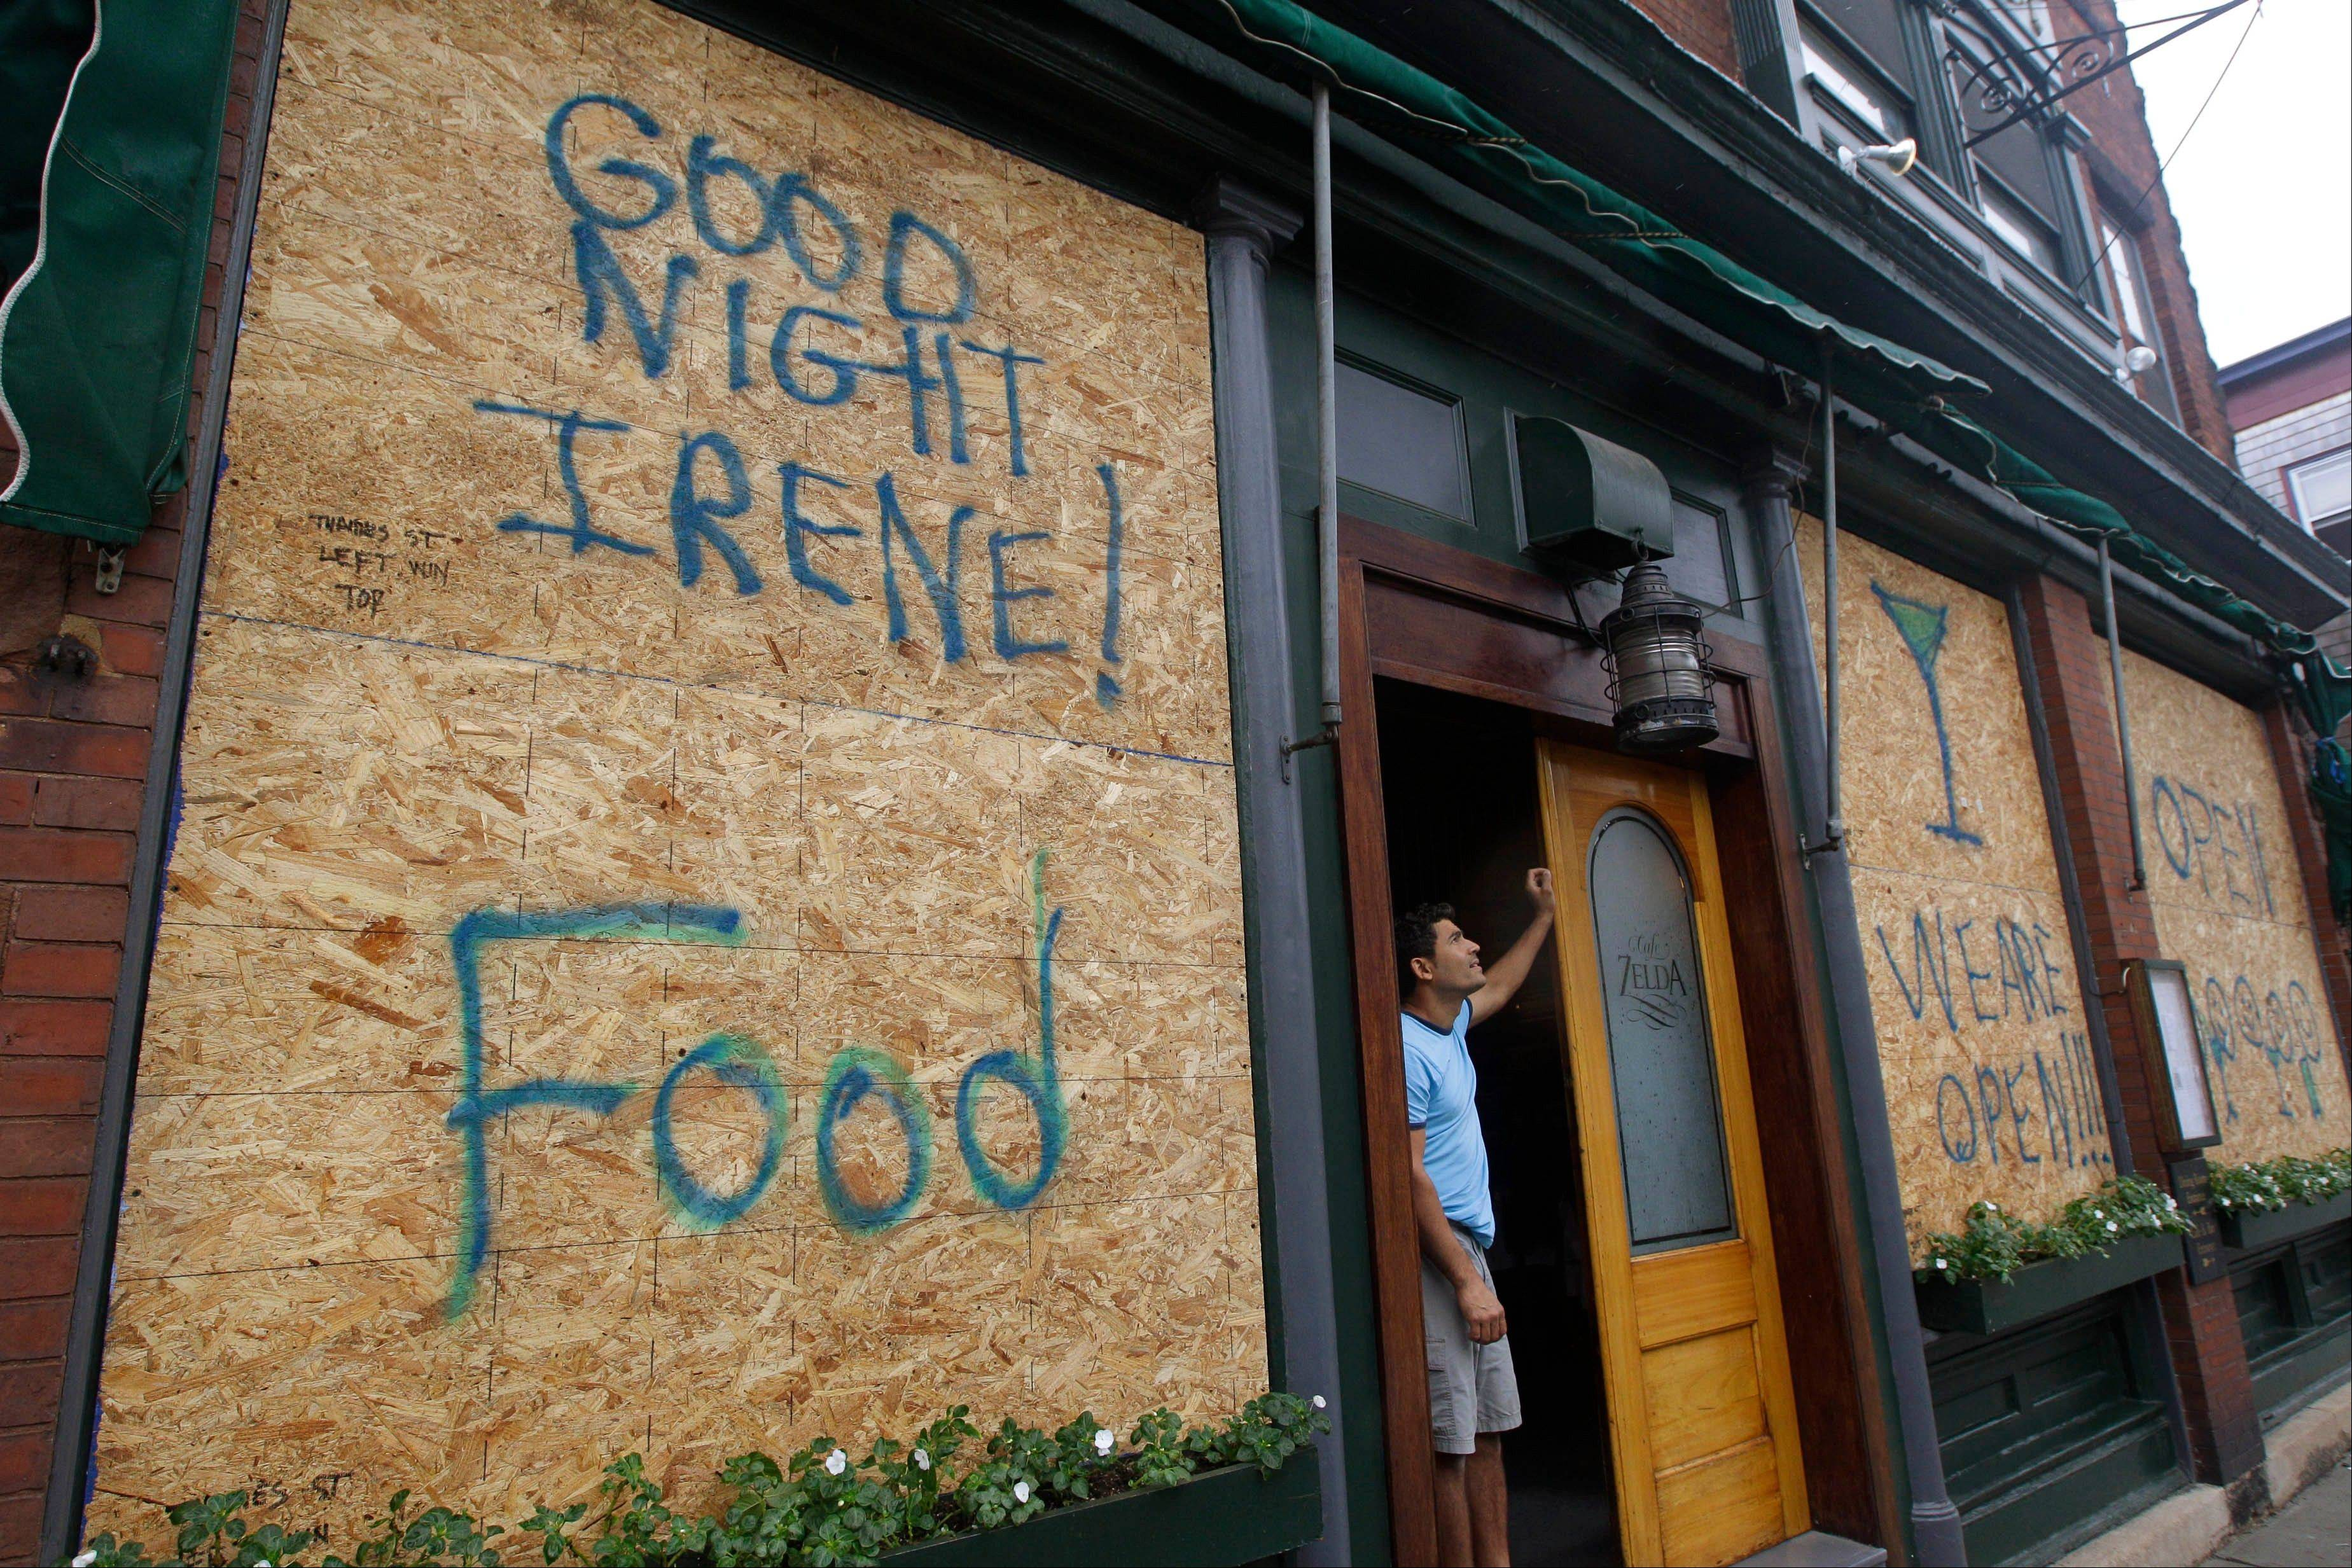 Hernani Abreu stands in the dorrway of Cafe Zelda on historic Tames Street, where he has worked for the past 12 years, and looks up at the sky as Tropical Storm Irene impacts the area in Newport, RI., Sunday morning, Aug. 28, 2011. Irene weakened to winds of 60 mph, well below the 74 mph dividing line between a hurricane and tropical storm. The system was still massive and powerful, forming a figure six that covered the Northeast. It was moving twice as fast as the day before.